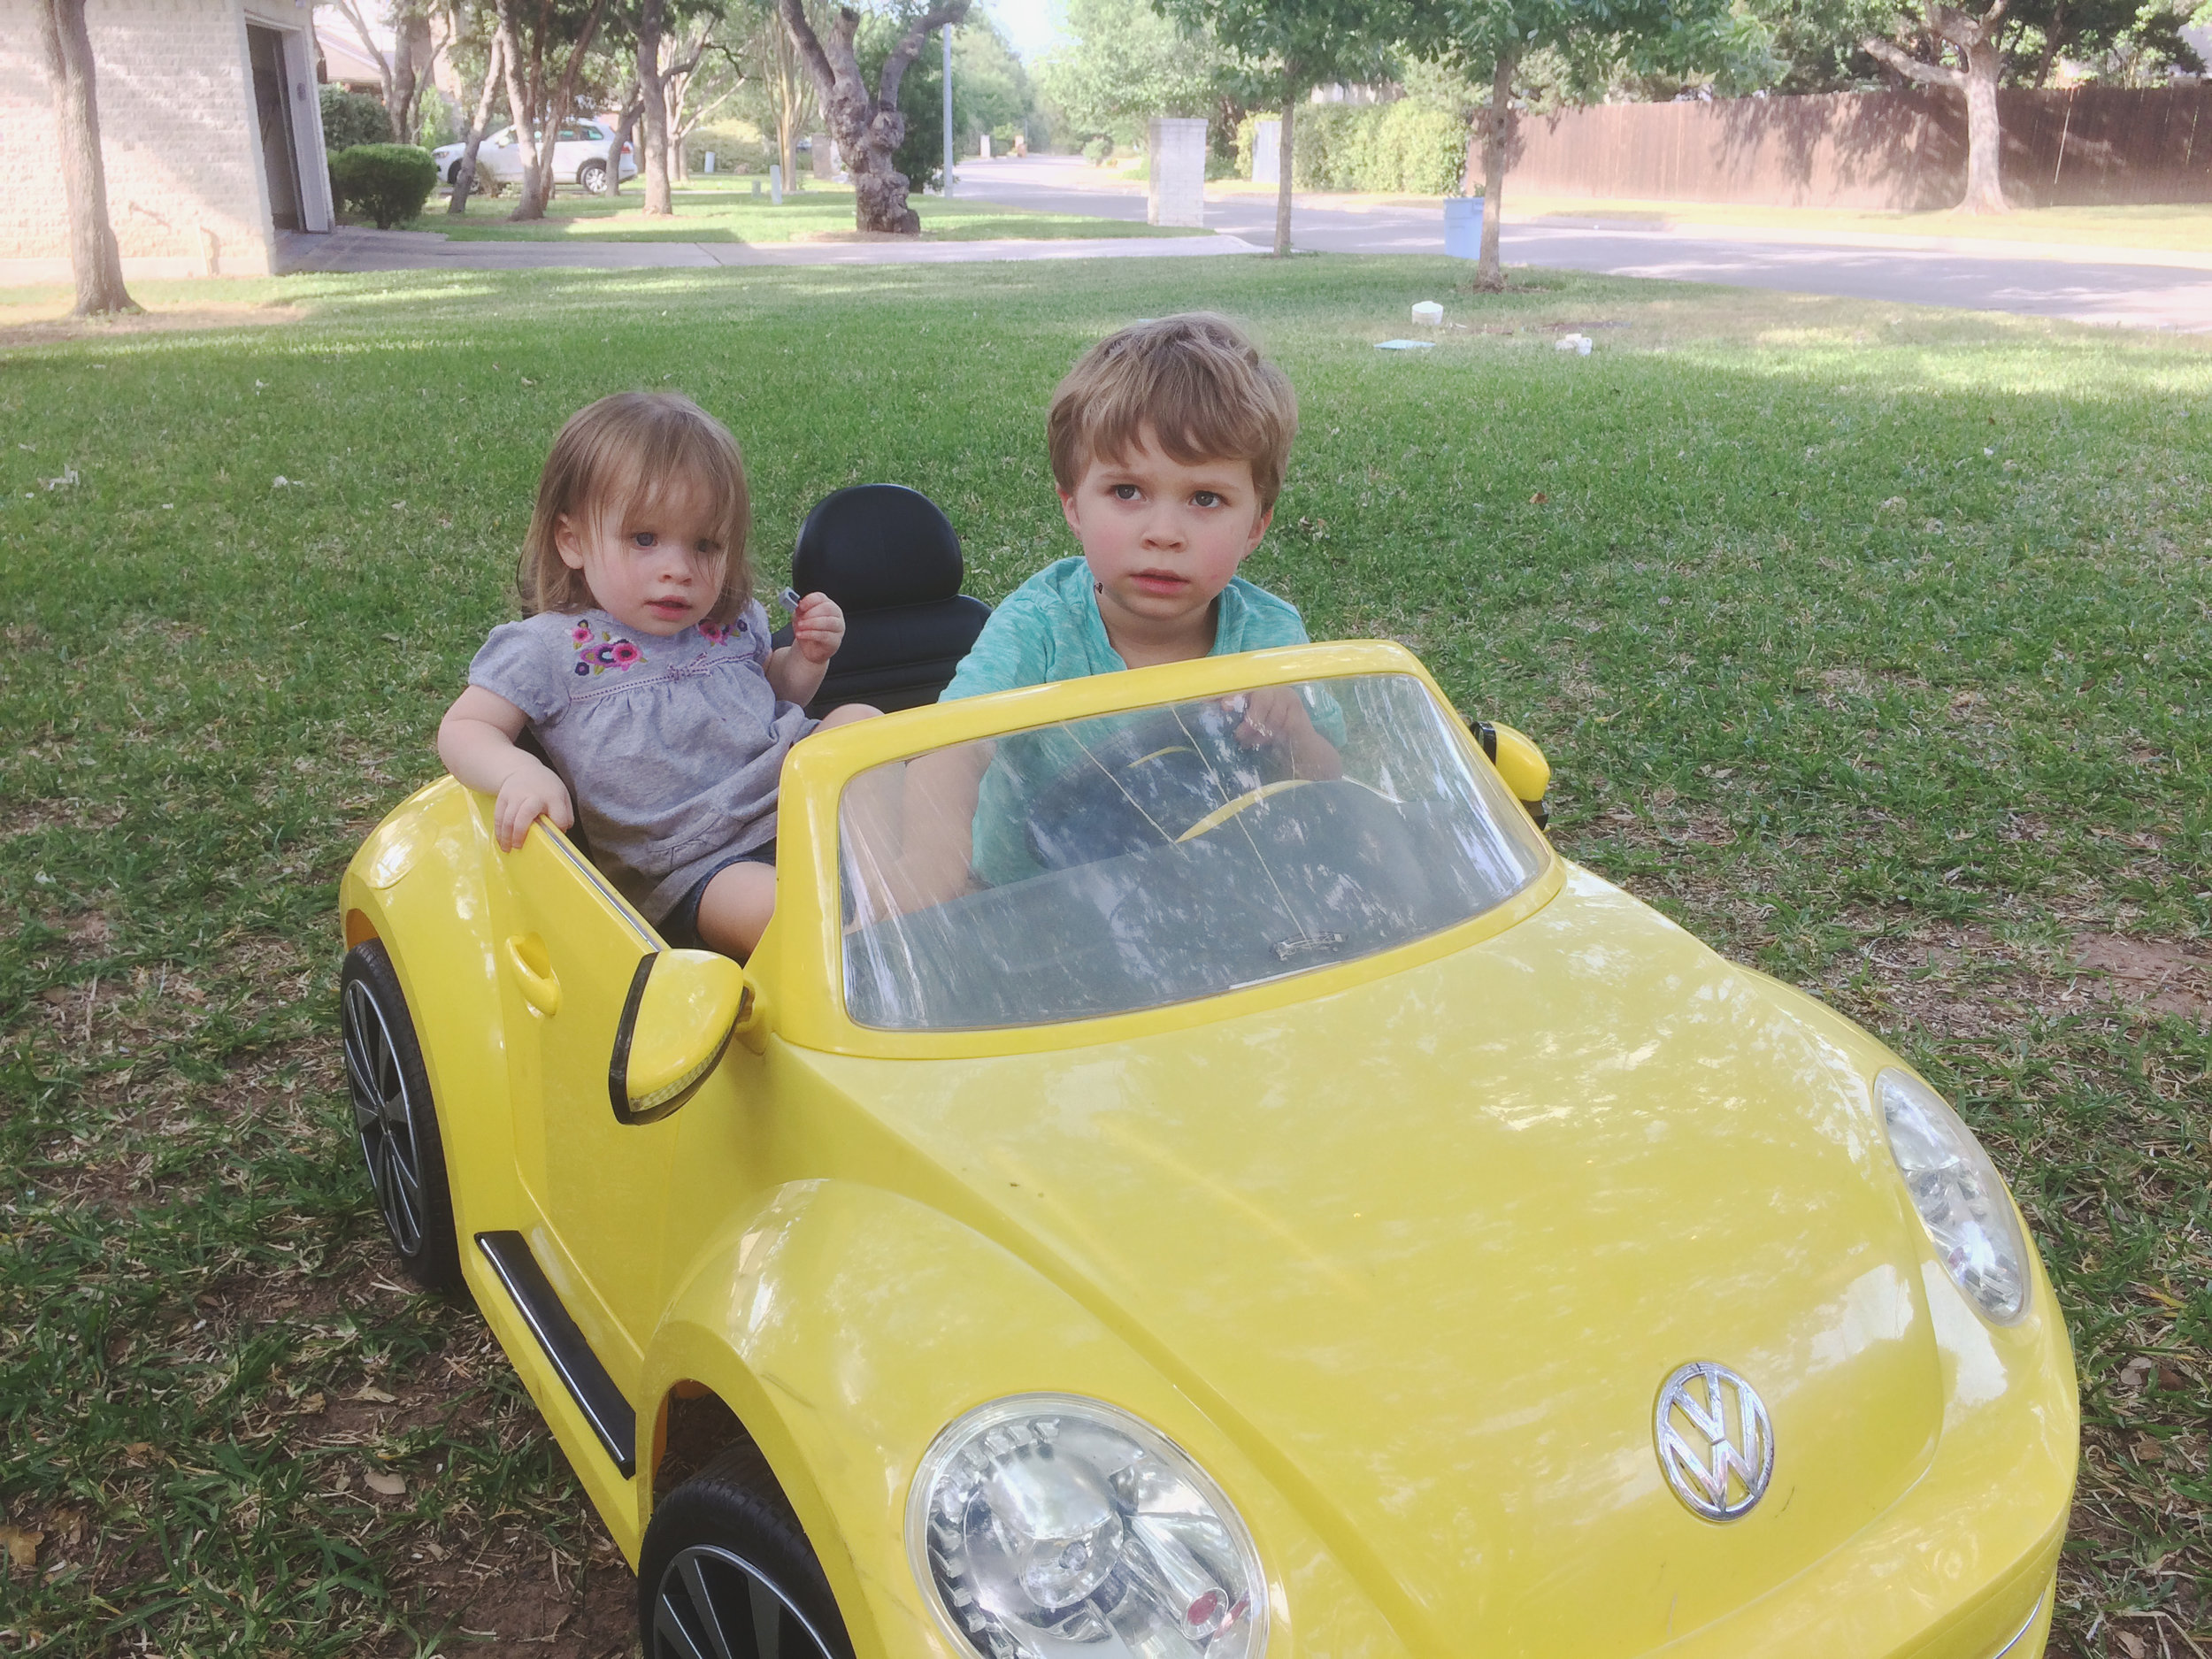 Sawyer and Jahnabell talking the neighbor's car for a spin. (please stop growing up so fast!)